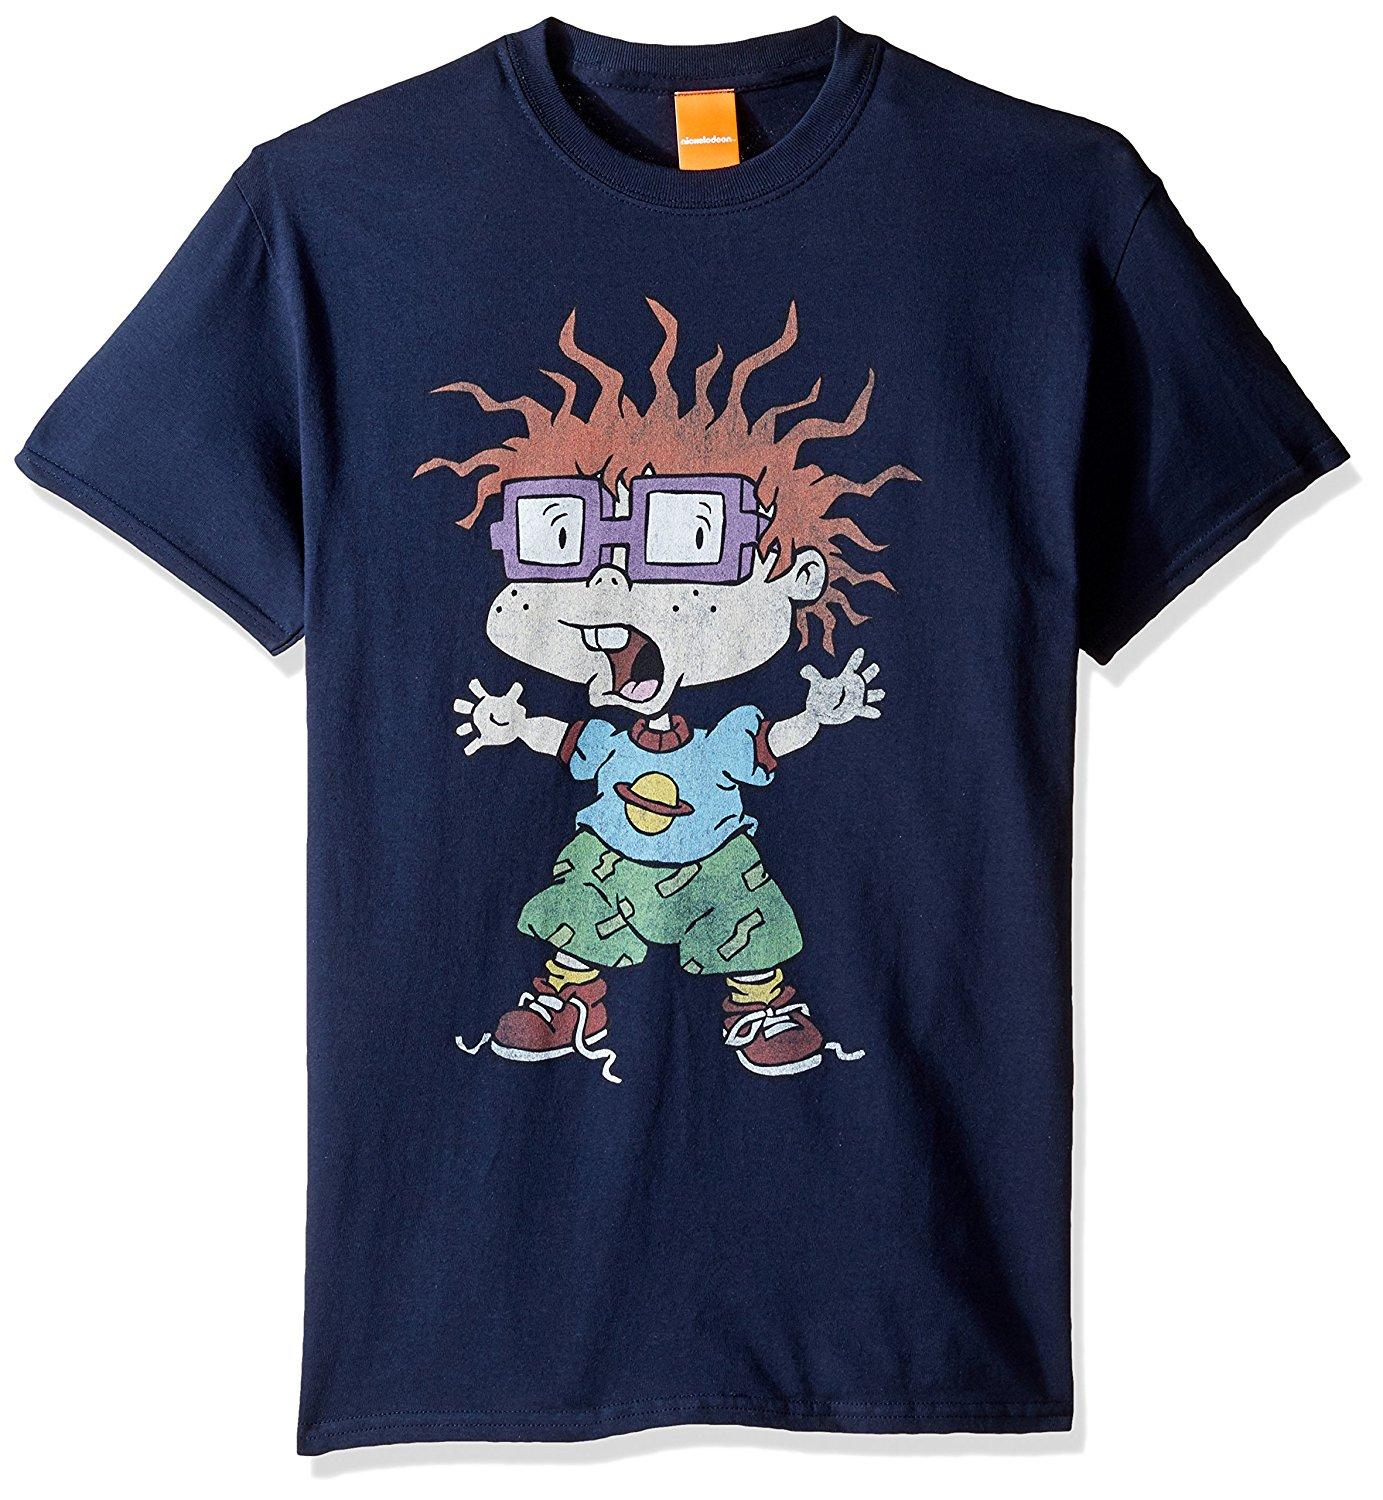 watch 043c9 ddc7d john wall jersey Nickelodeon Men s Rugrats Scared Chuckie T-Shirt Fashion  Men T-shirt